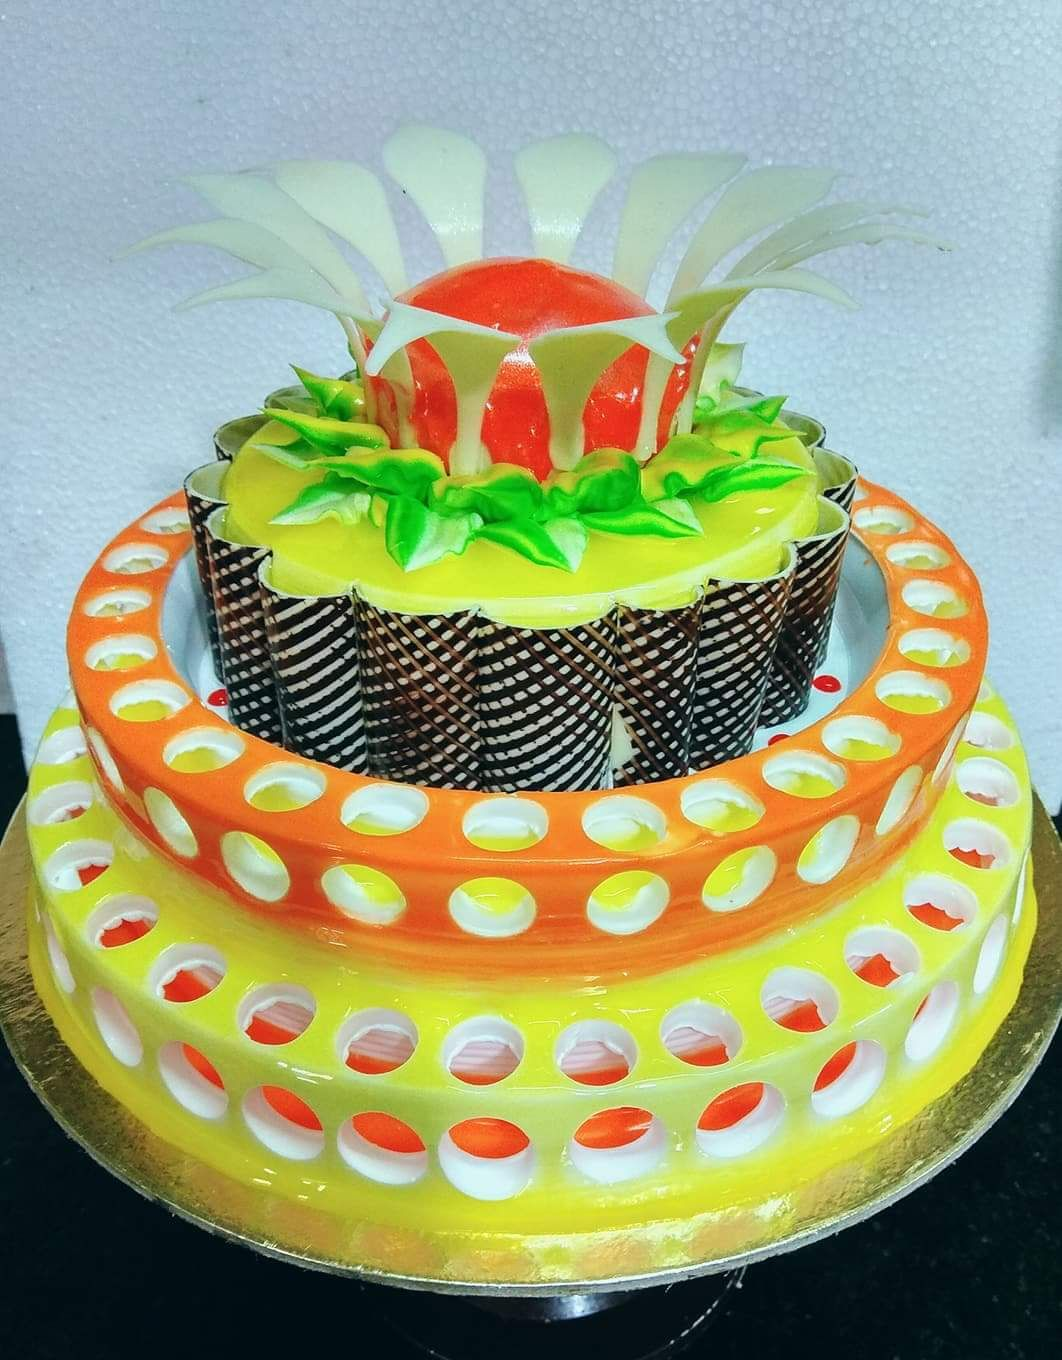 Online Cake Delivery Kolkata West Bengal India Cakes Are Time Honored Desserts Served During Several Occasions They Not Only Enjoyed By People Of All